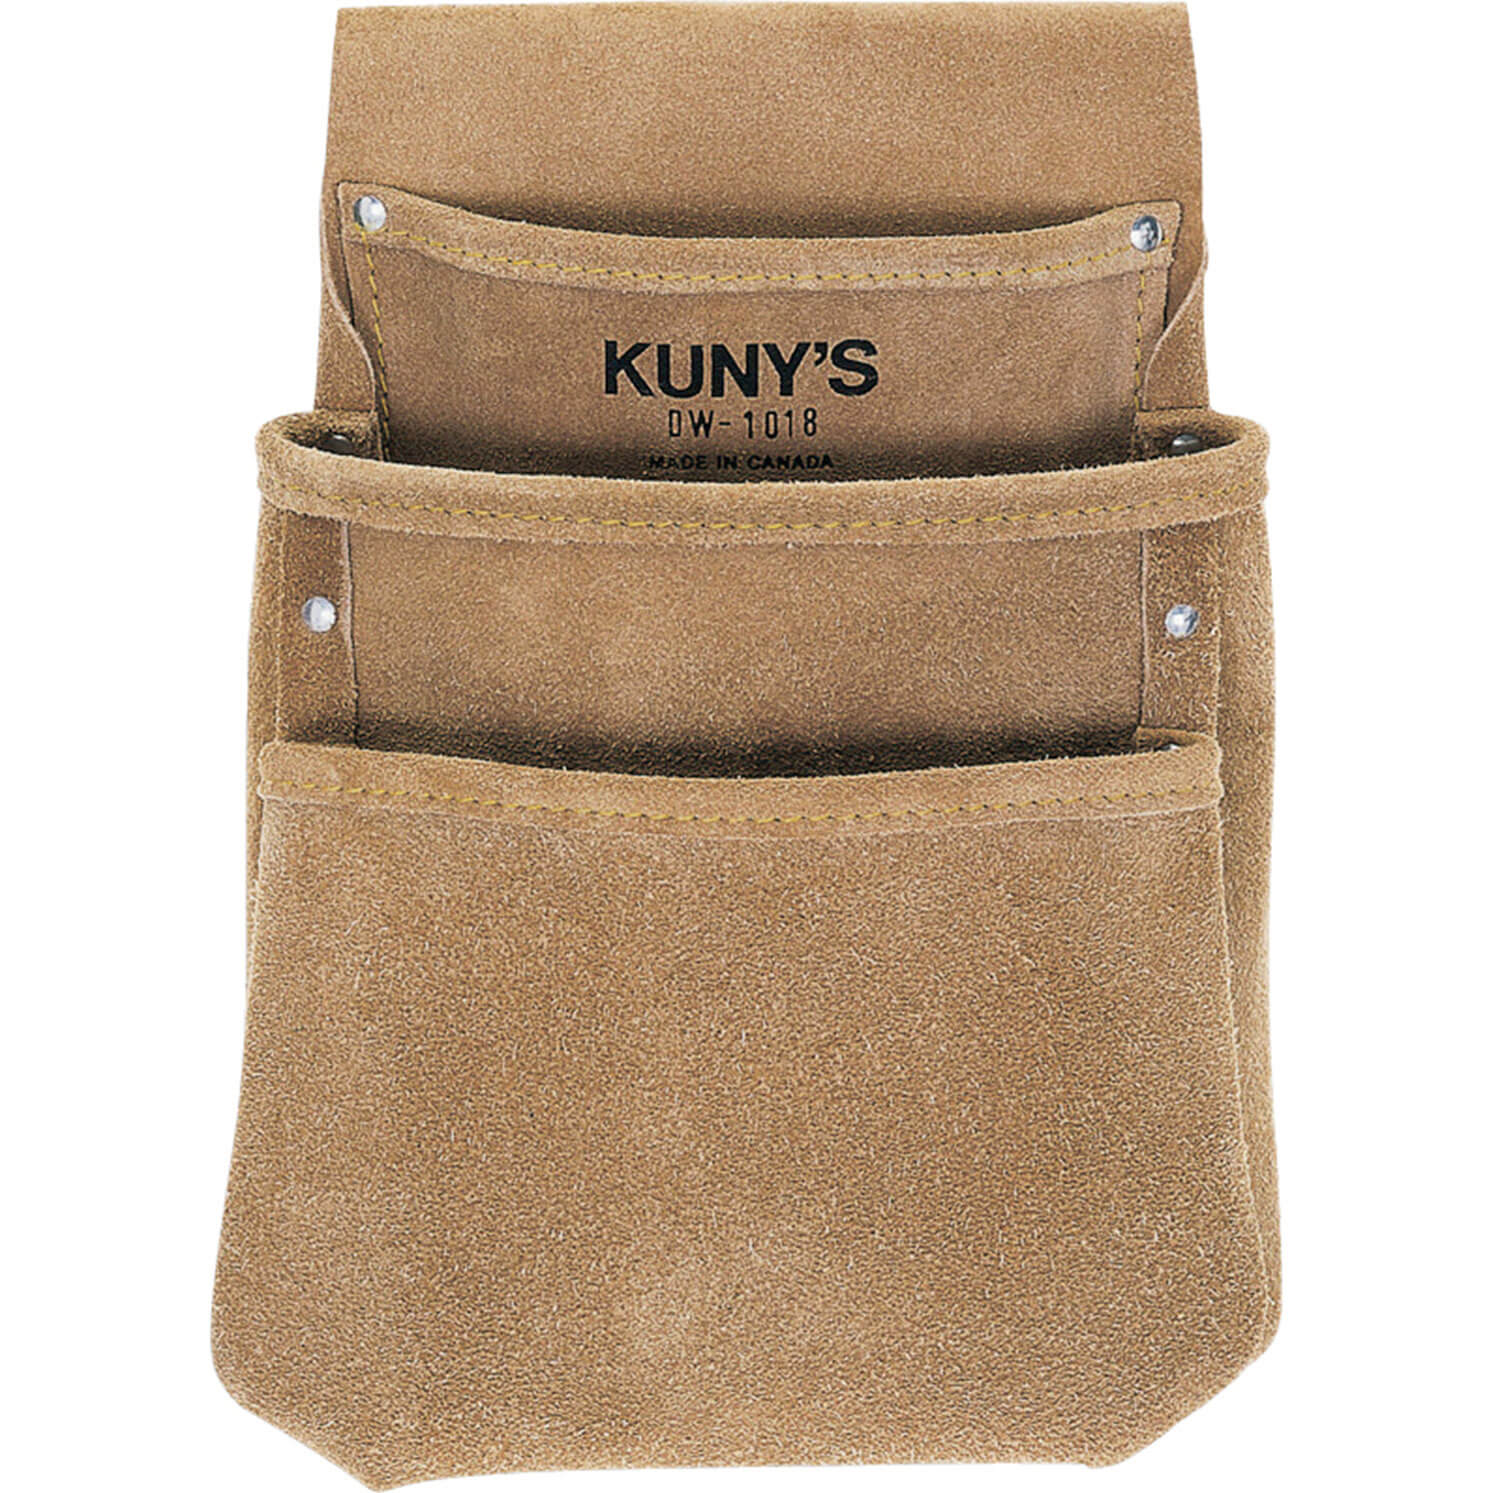 Image of Kunys 3 Pocket Split Grain Leather Drywall Pouch